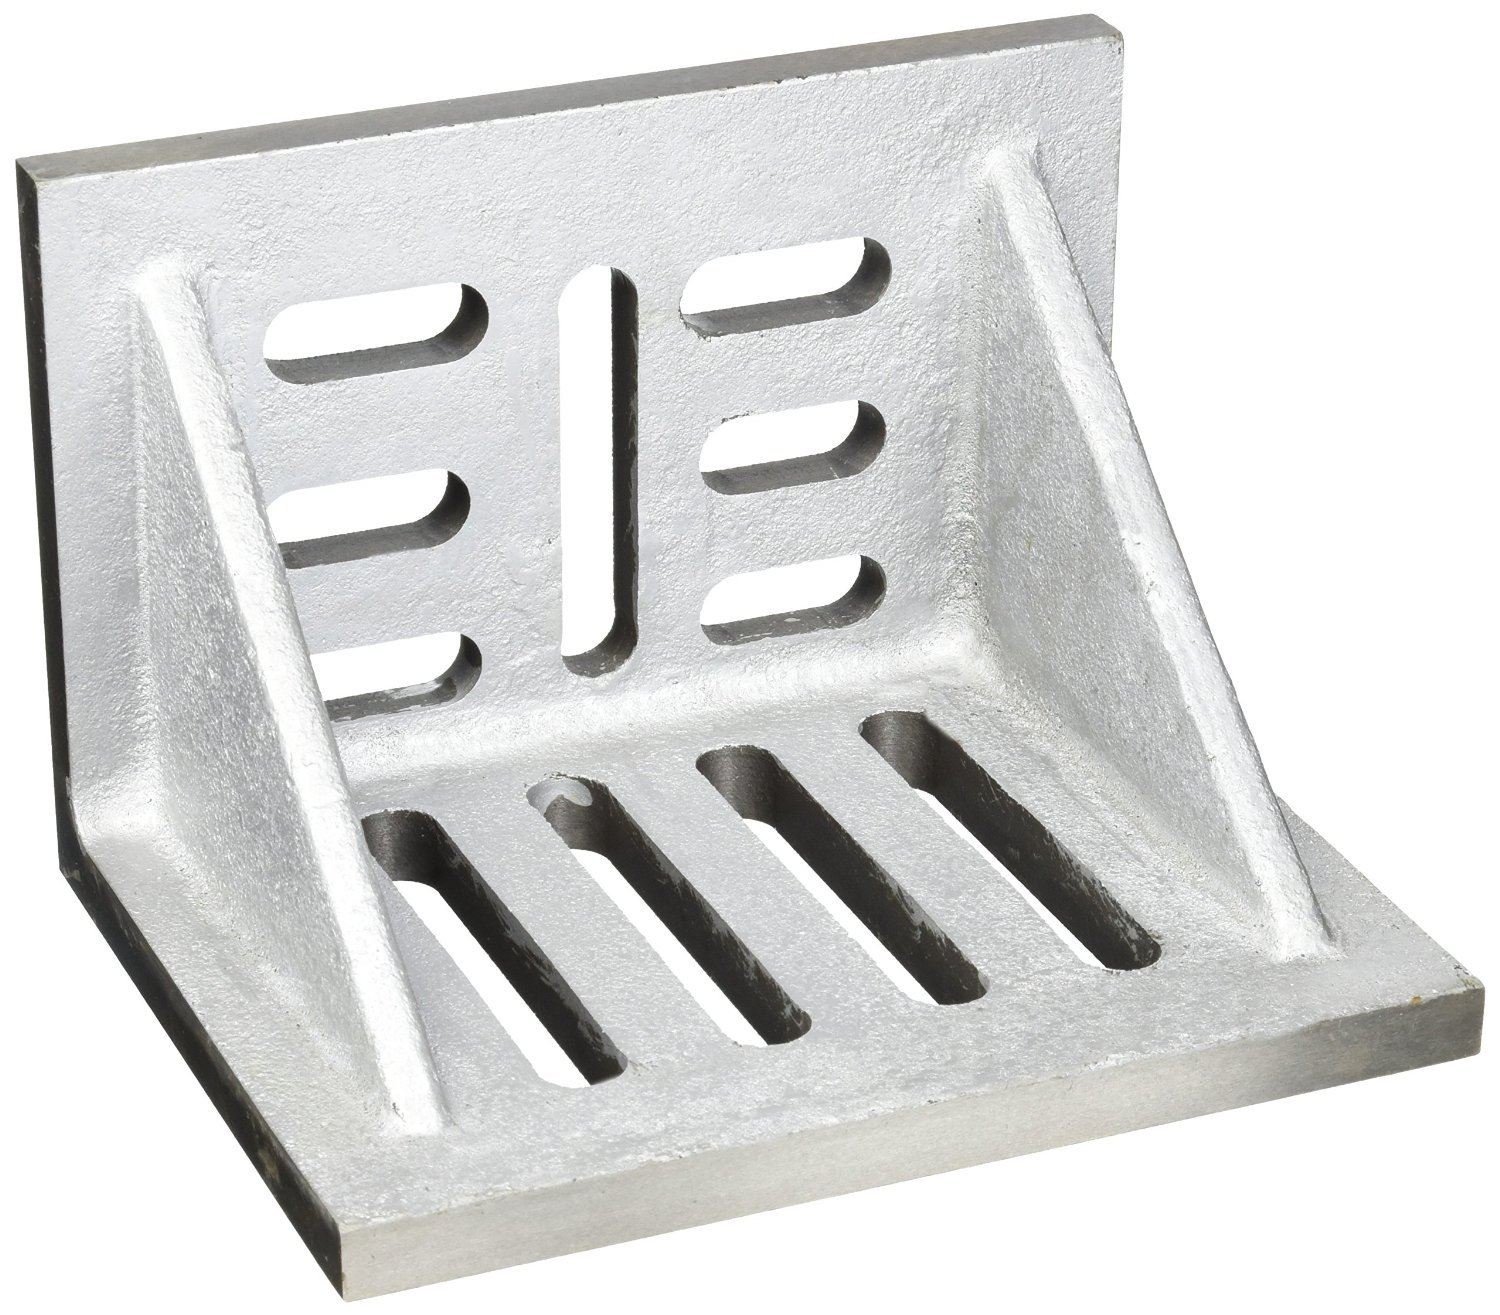 HHIP 3402-0311 9 x 7 x 6'' Slotted Angle Plate, Webbed by HHIP (Image #1)